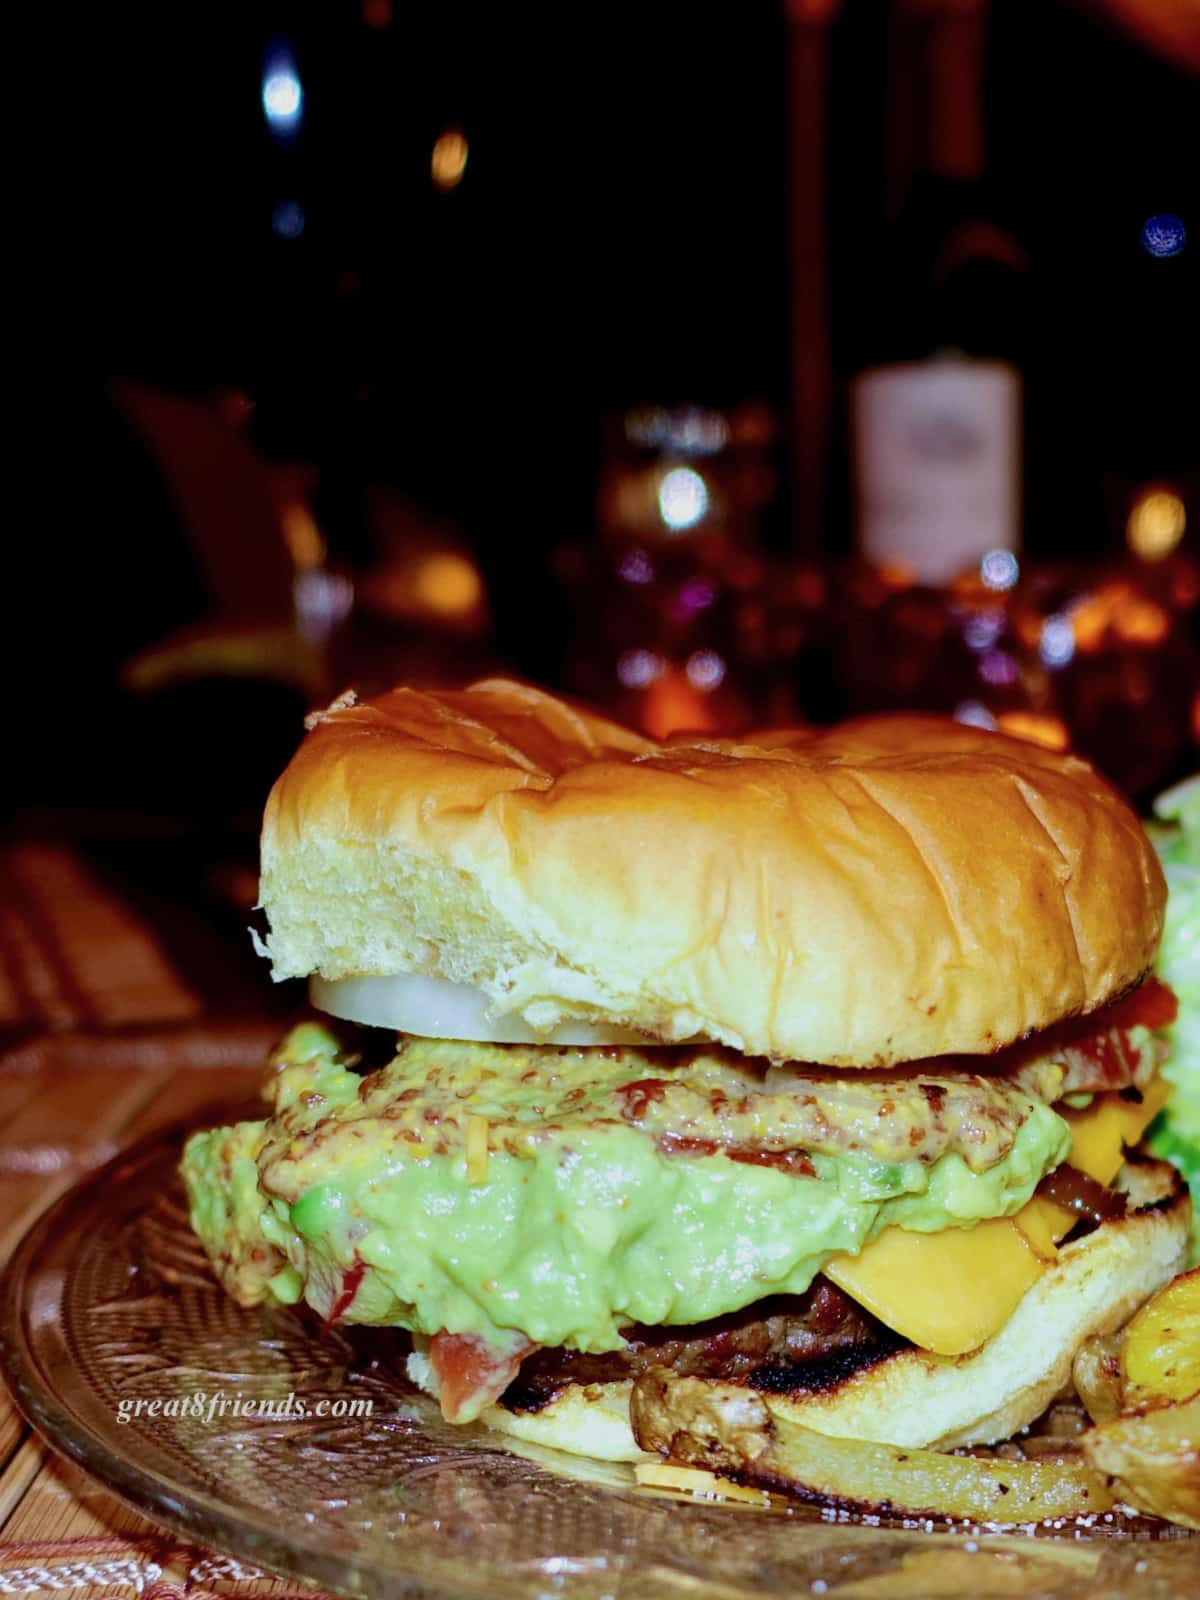 Grilled hamburger on a bun with cheese, mustard and guacamole.